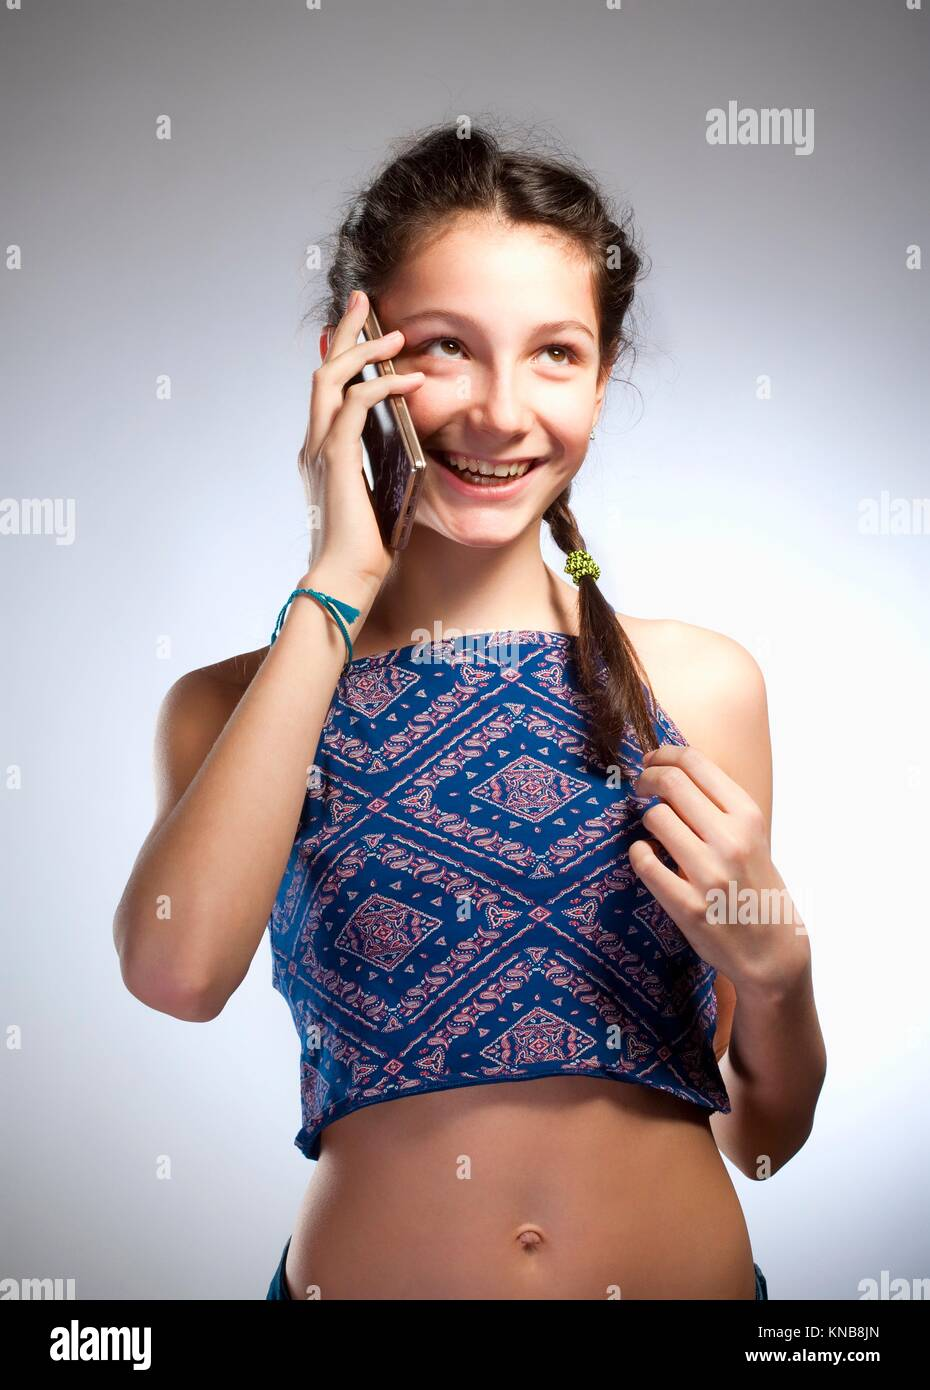 Preadolescent Girl Talking on the Phone. - Stock Image